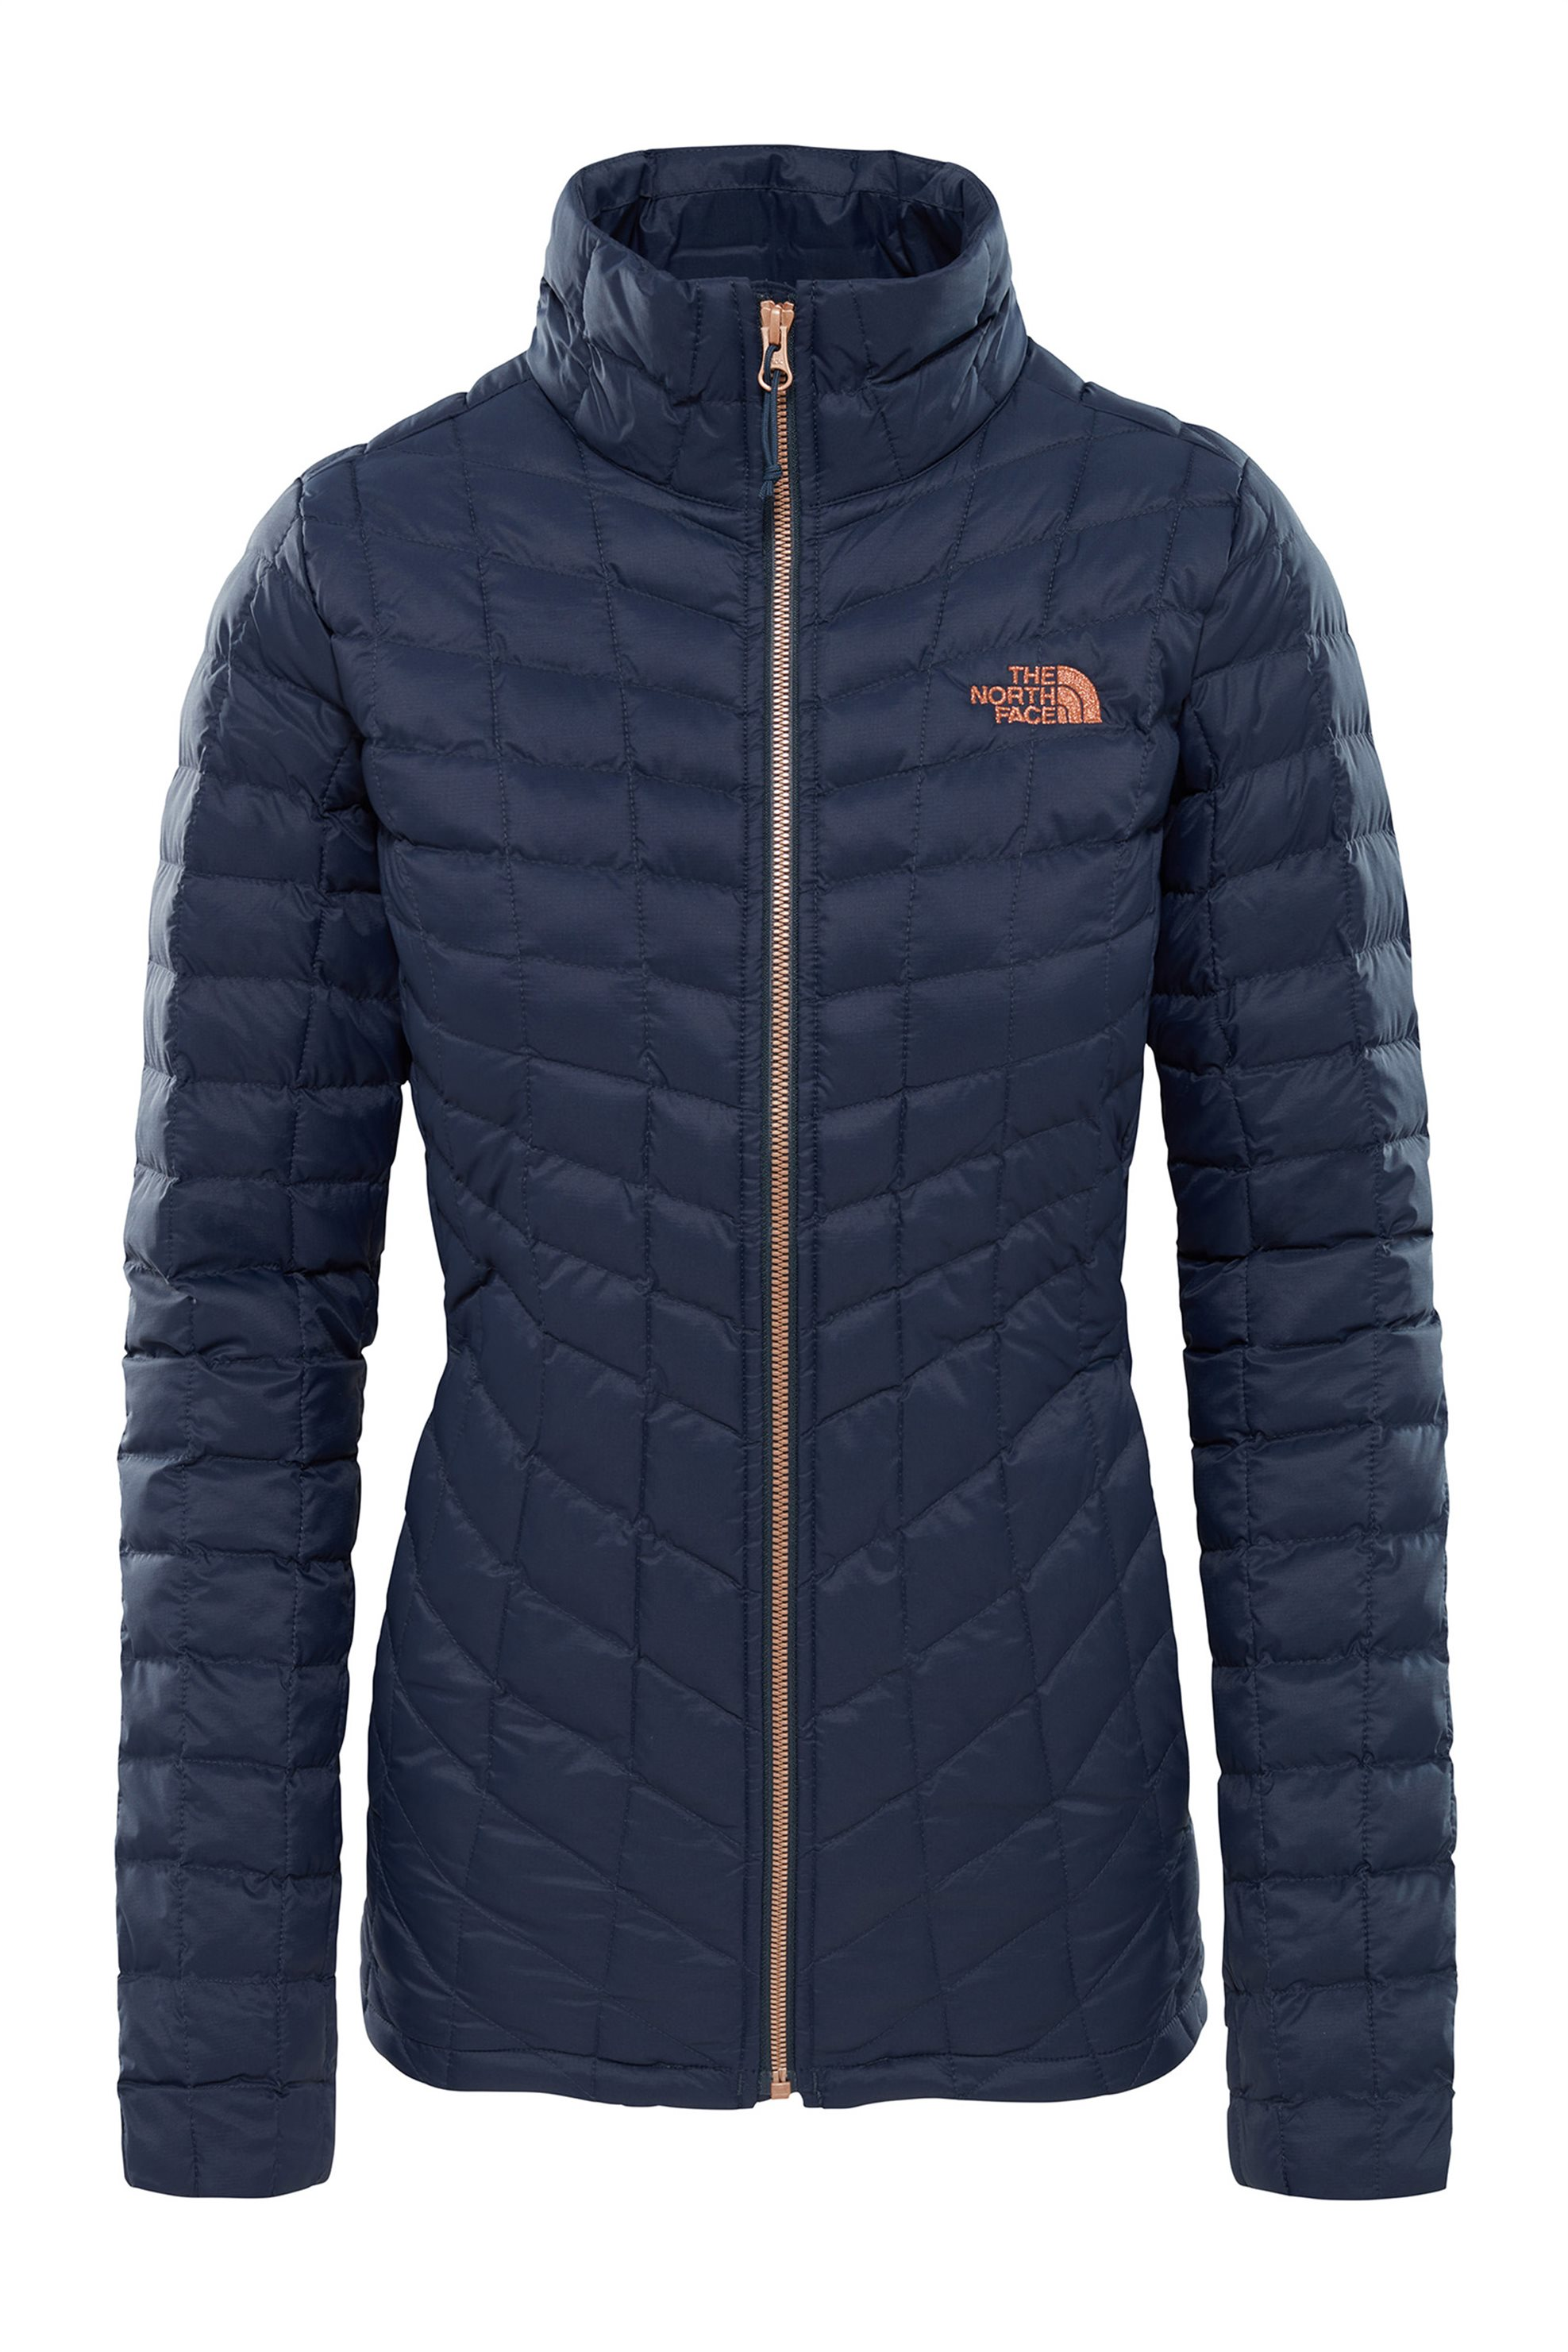 0e5255f46dd The North Face γυναικείο μπουφάν Thermoball™ - T93BRL6XF - Μπλε Σκούρο